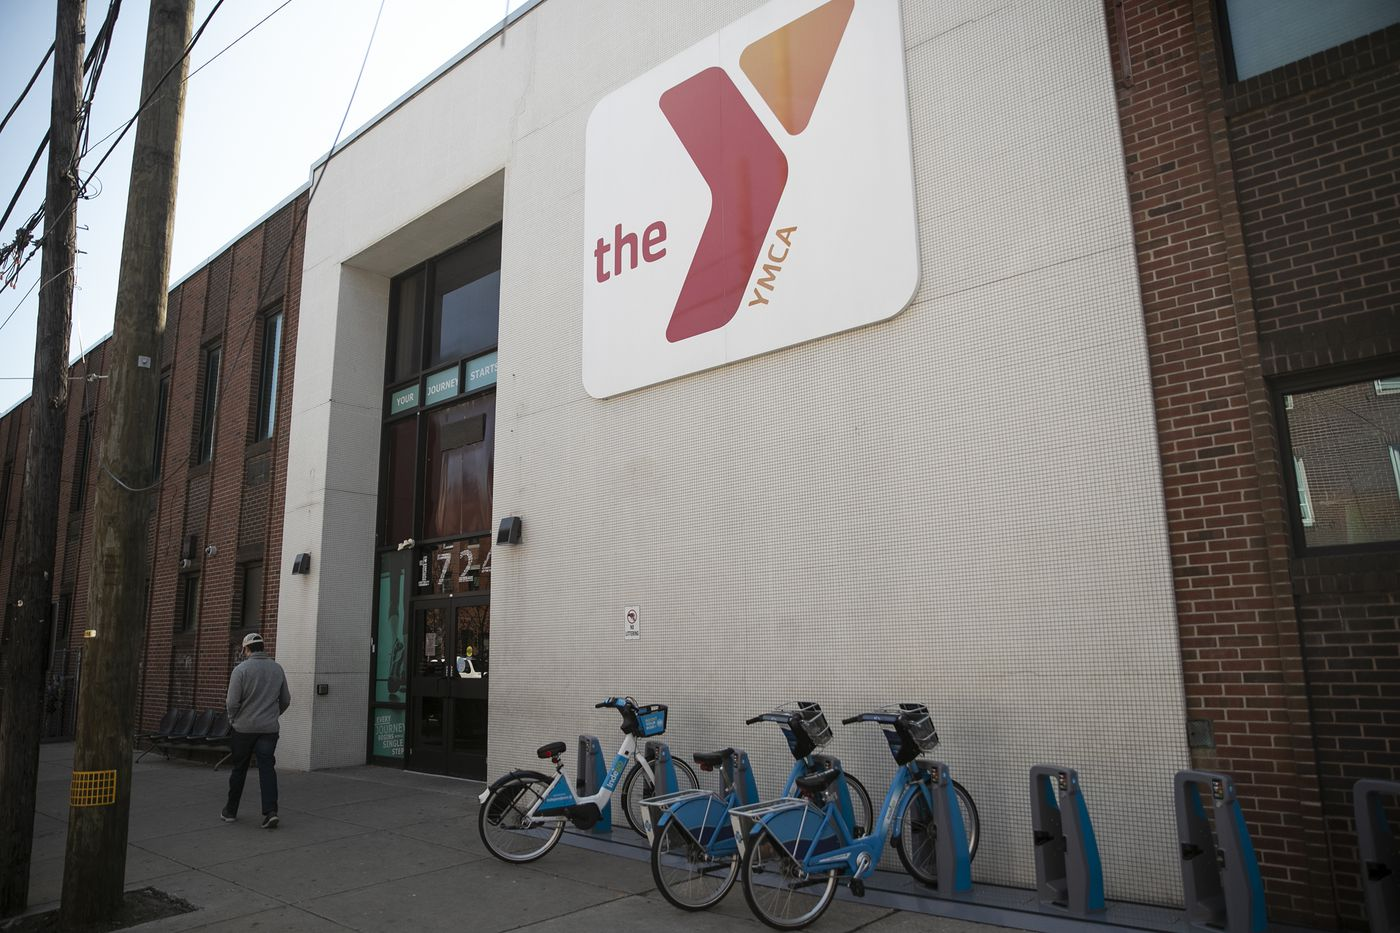 The YMCA building at 17th and Christian street in Philadelphia is photographed on Thursday, March 26, 2020. YMCA branches are closed due to the spread of COVID-19.